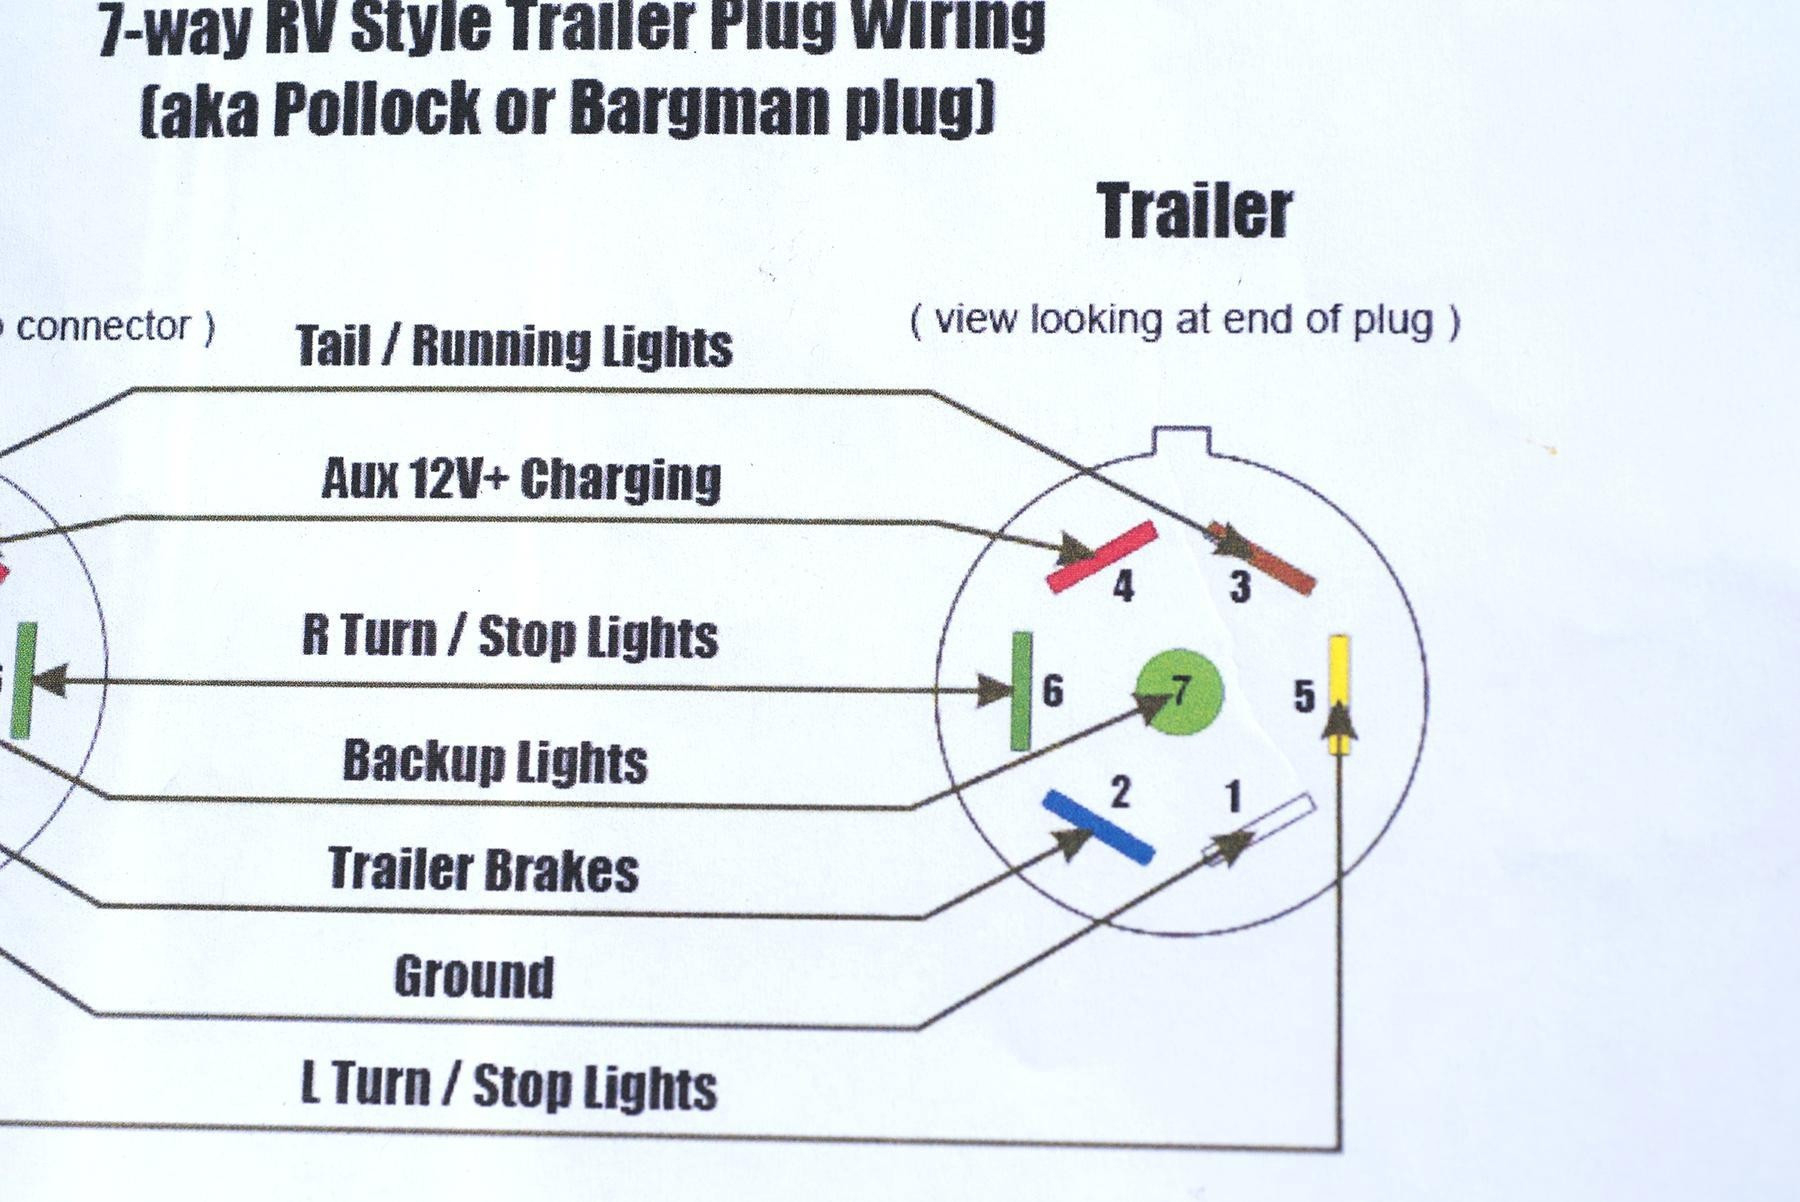 Phillips 7 Pin Trailer Connector Wiring Diagram - Wiring Data Diagram - Trailer Pigtail Wiring Diagram